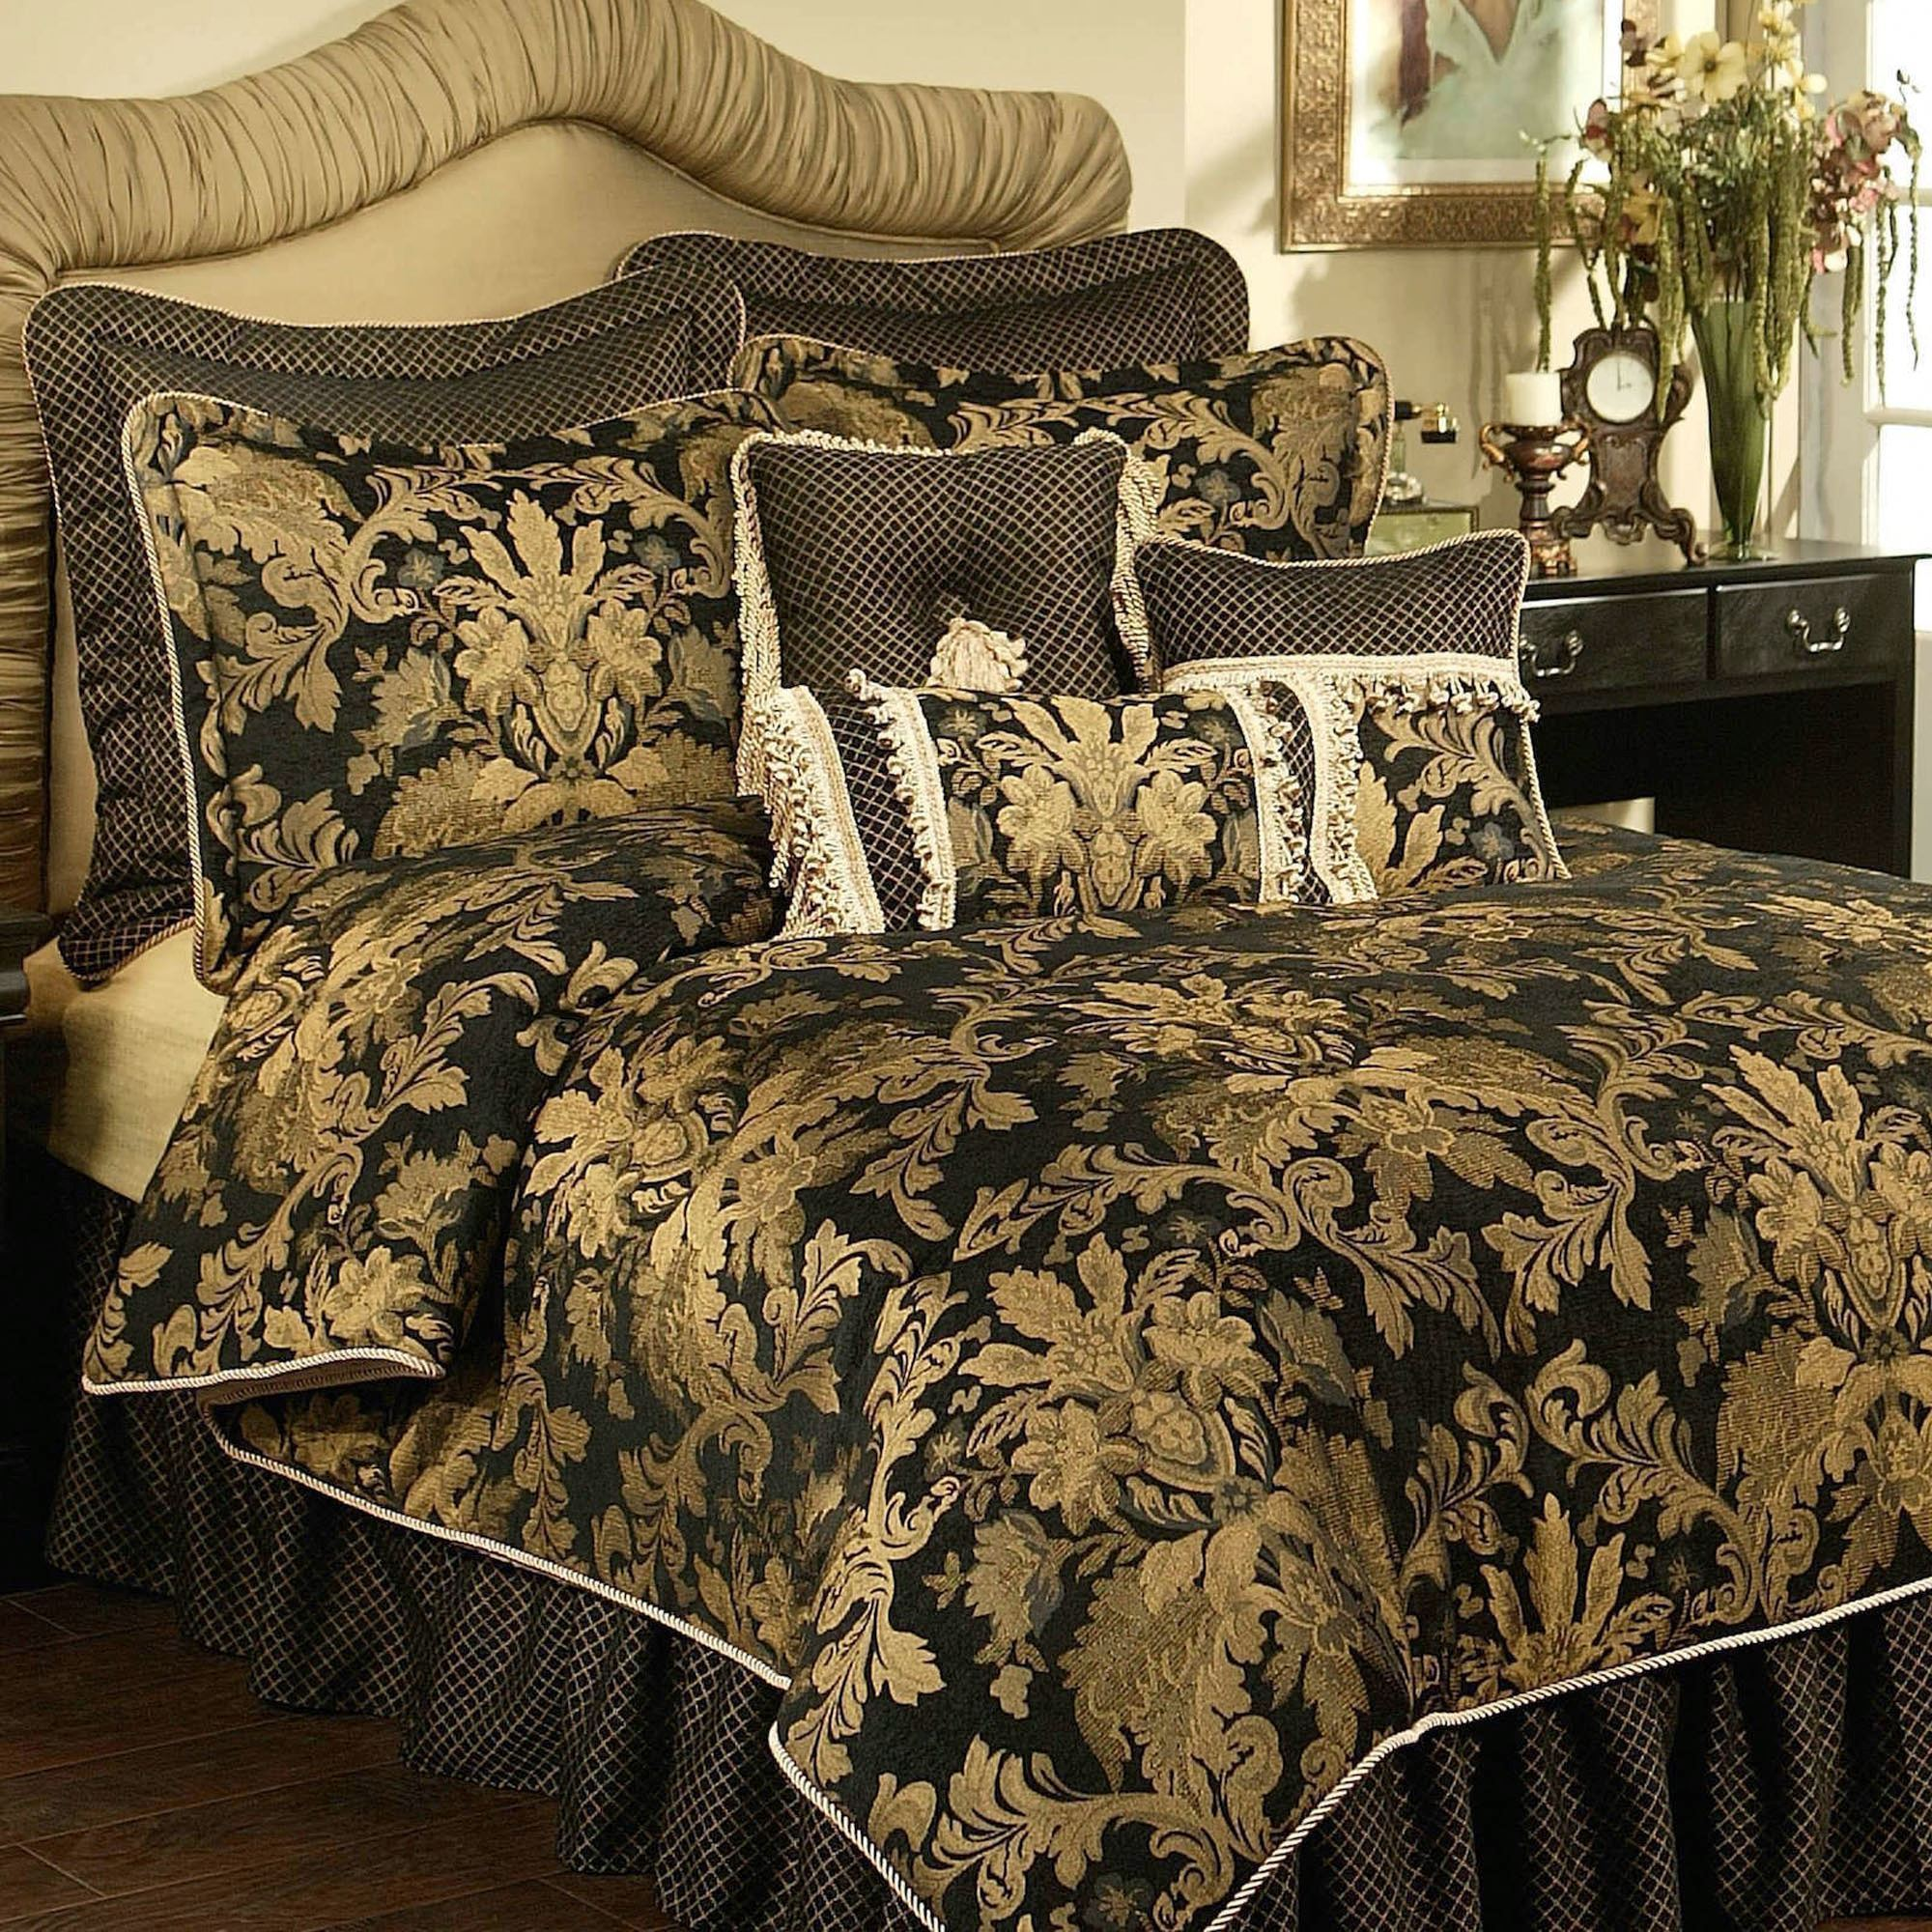 Mediterranean Bedding Sets